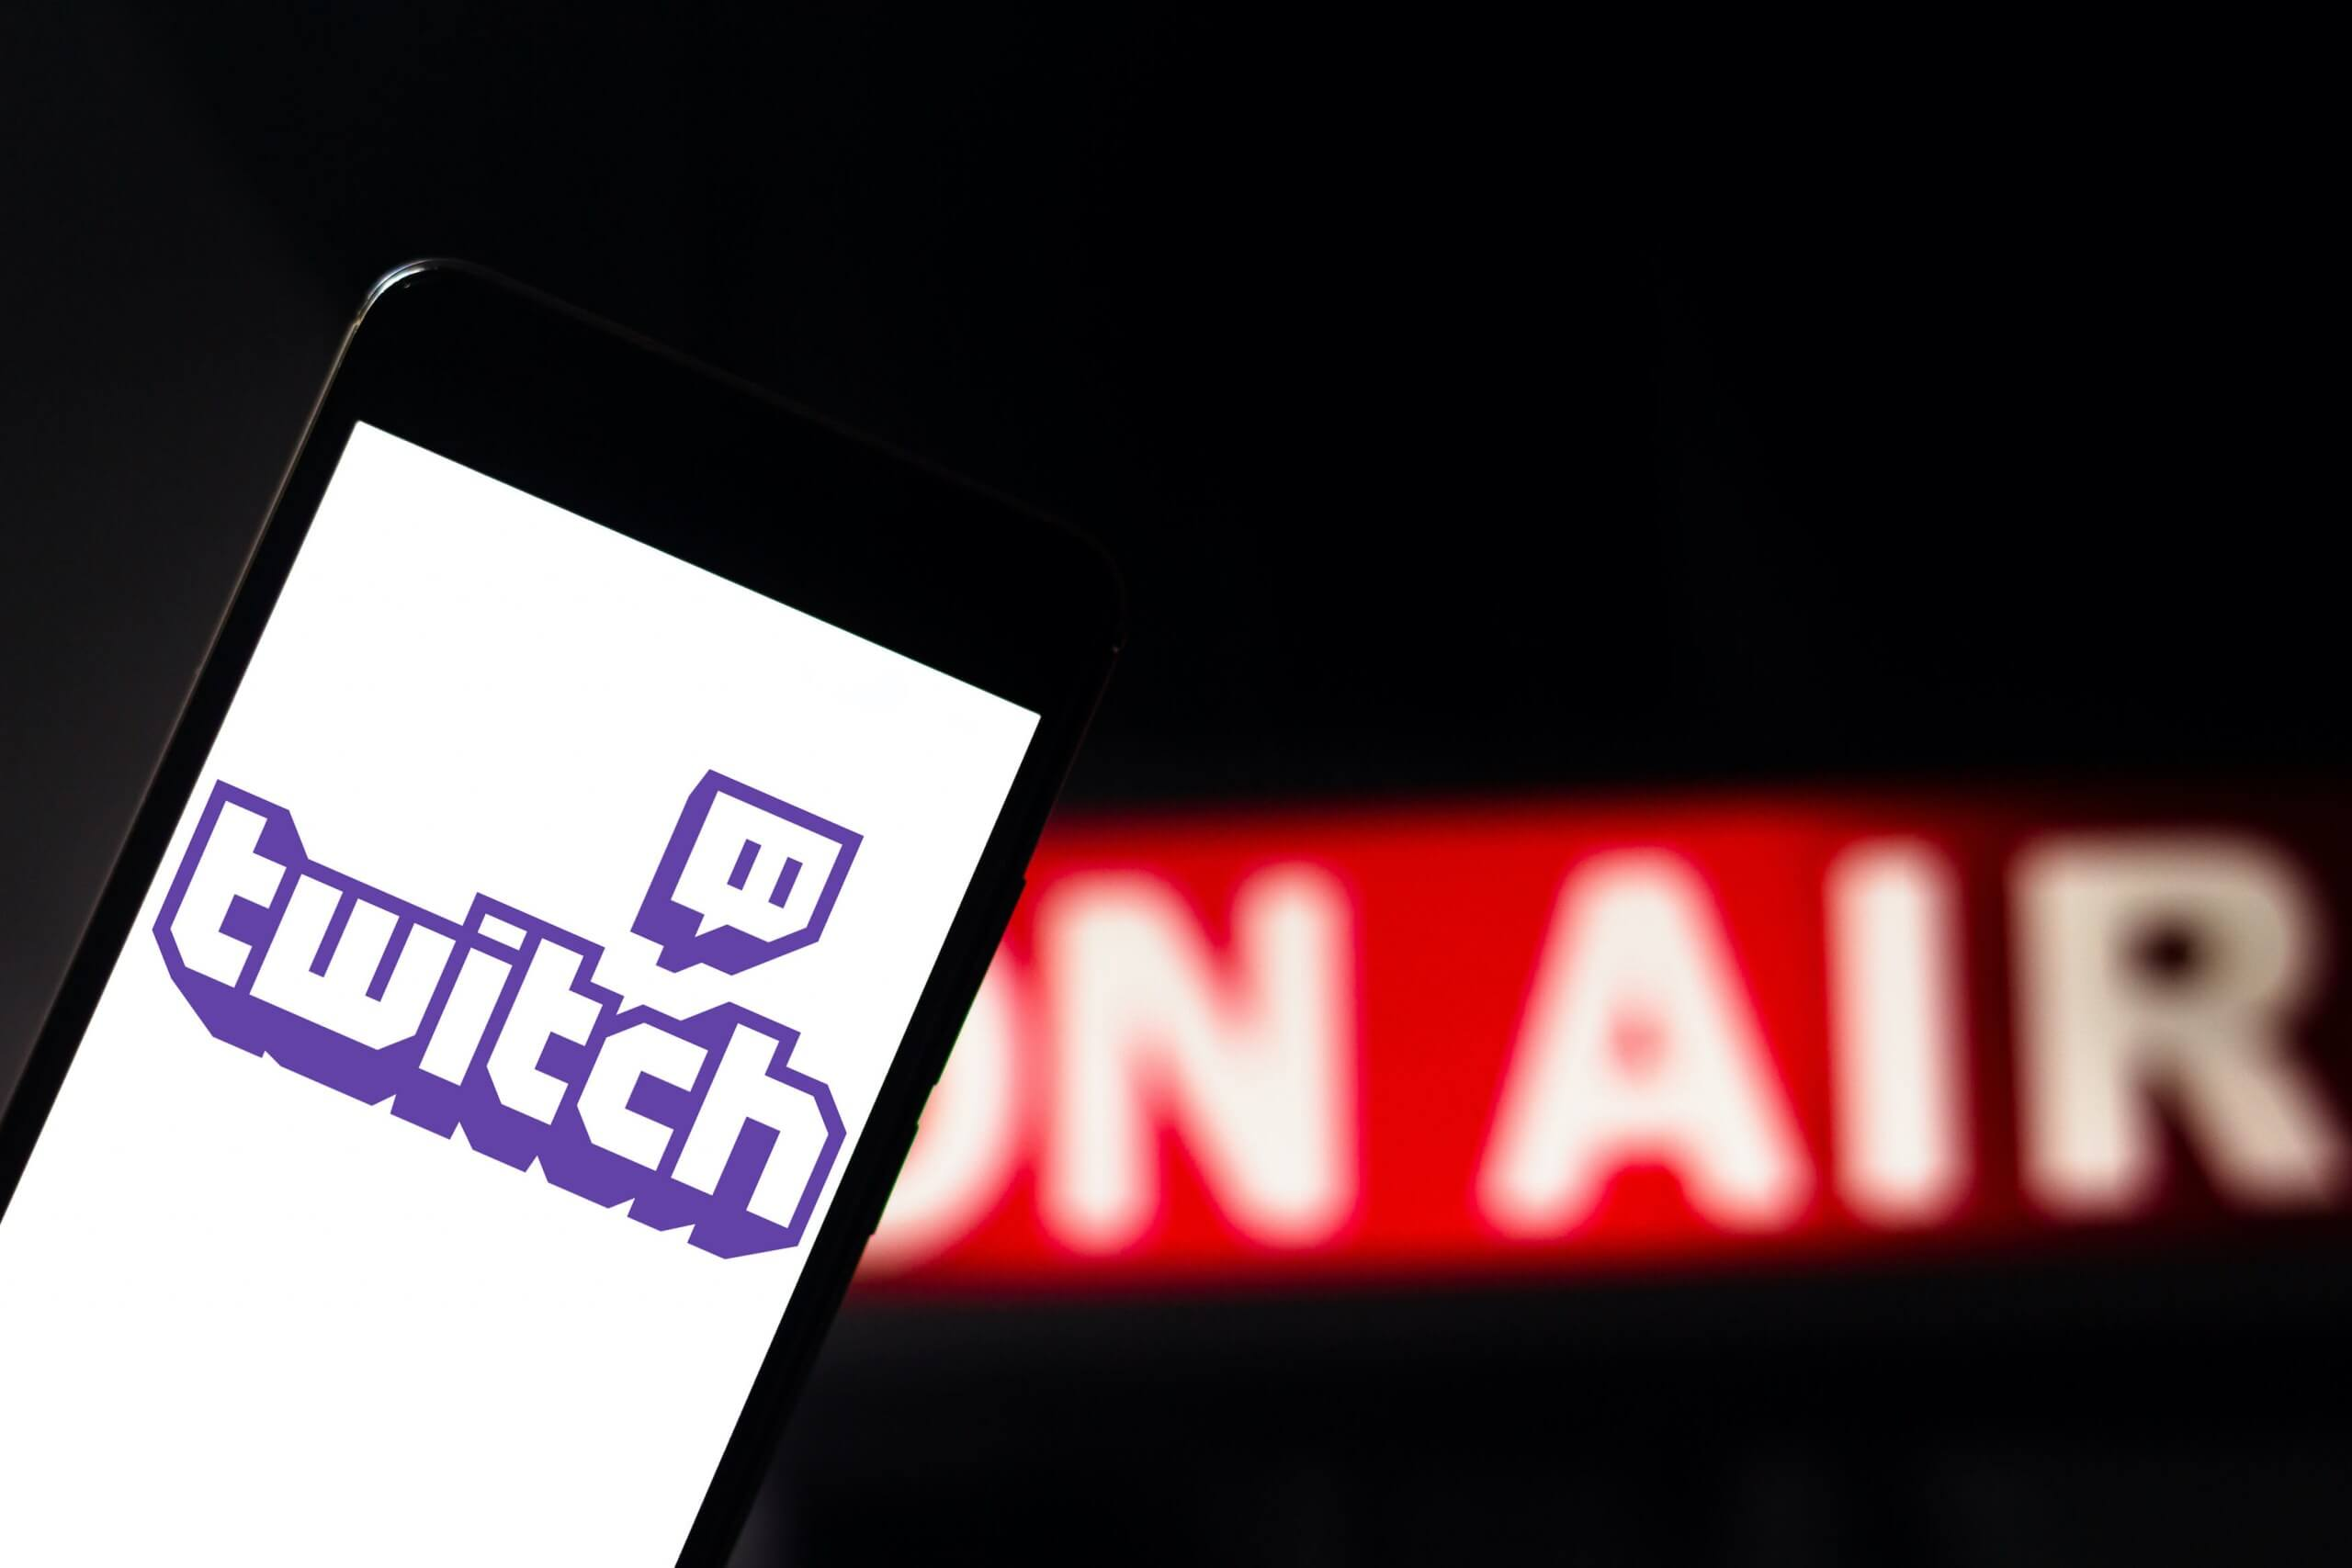 Twitch Studio is now available to the public in its open-beta phase